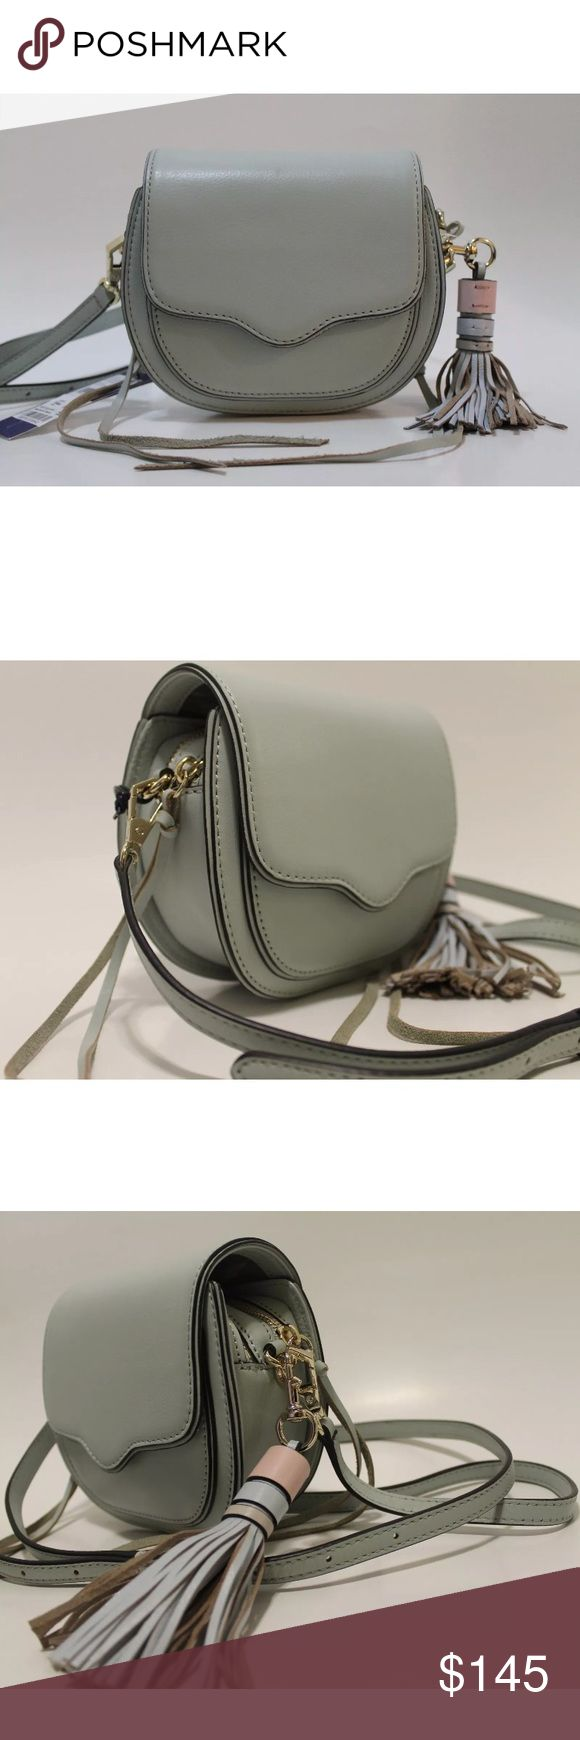 "REBECCA MINKOFF   Mini Sydney Cross Body Bag REBECCA MINKOFF   Mini Sydney Cross Body Bag  100% Authentic  Color: Pale Sage / Light Gold Style: HR25IFCX50 Retail: $225.00  With a darling saddle shape and of-the-moment fringe tassel, Rebecca Minkoff's latest mini crossbody looks fresh for a dressed-up date night or running weekend errands. Adjustable crossbody strap Magnetic flap closure, zip closure; lined Two interior zip compartments, interior slip pocket, exterior slip pocket 7""L x 2""W x…"